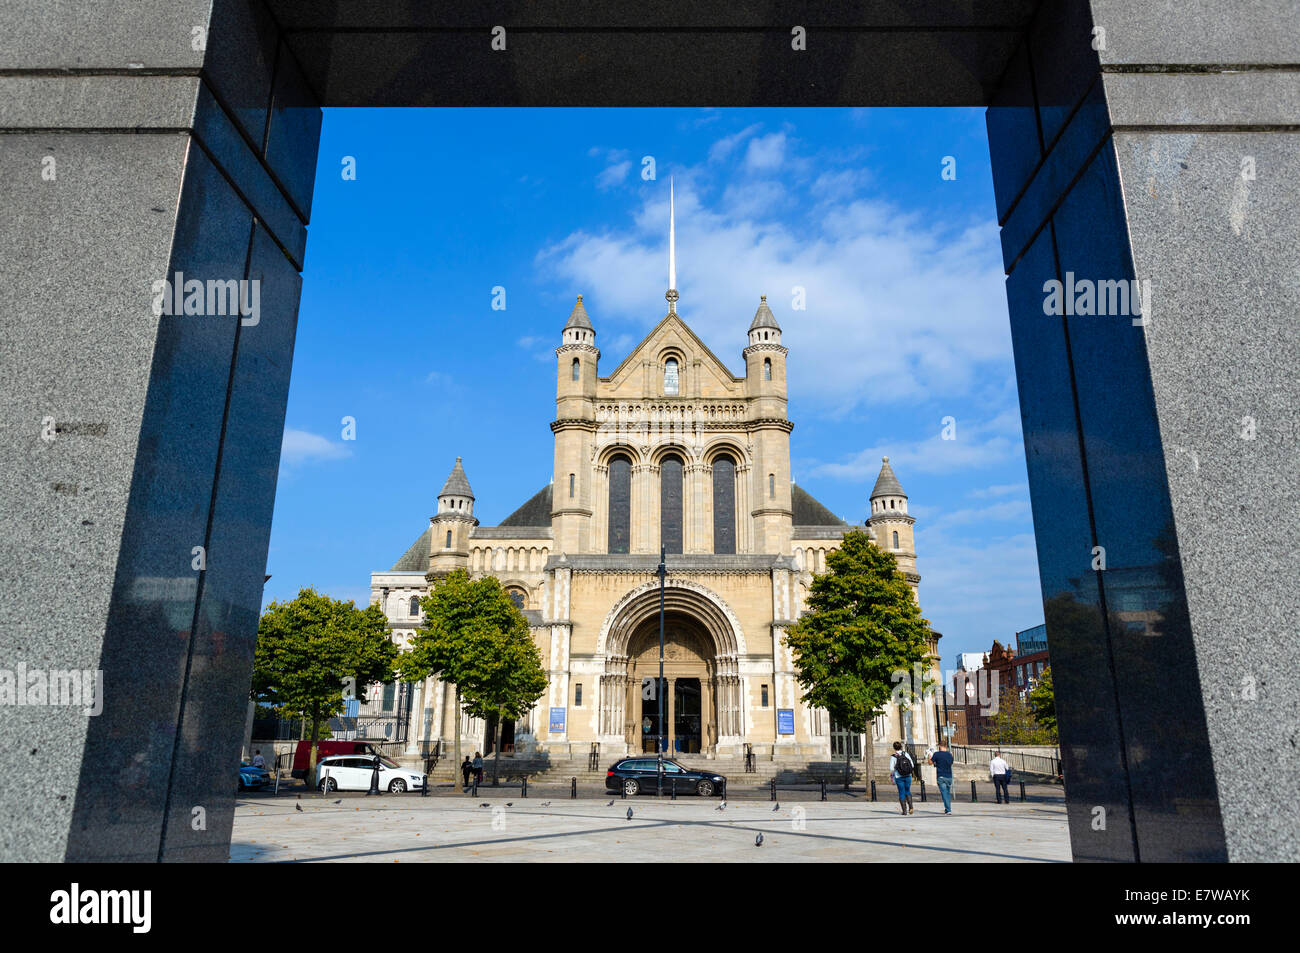 St Anne's Cathedral from Writer's Square, Cathedral Quarter, Belfast, Northern Ireland, UK - Stock Image